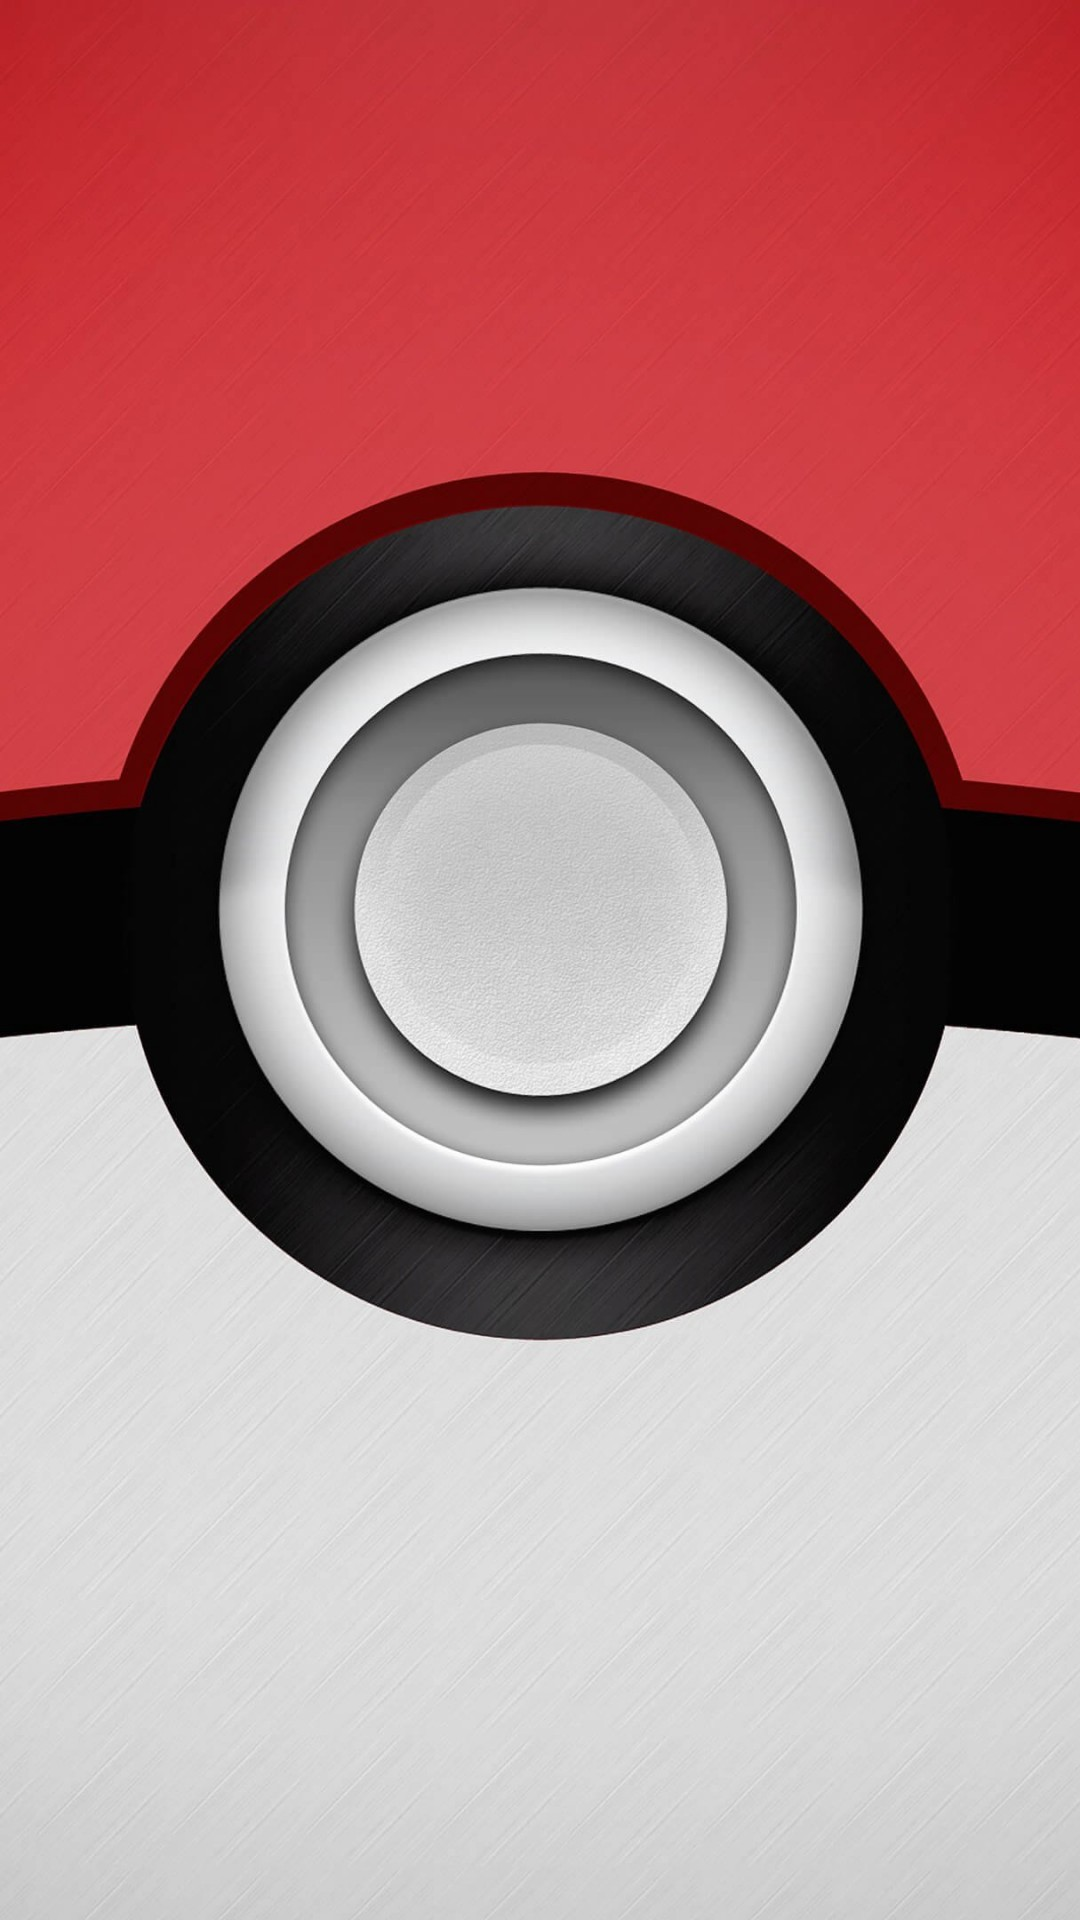 Pokeball Wallpaper for SAMSUNG Galaxy S5